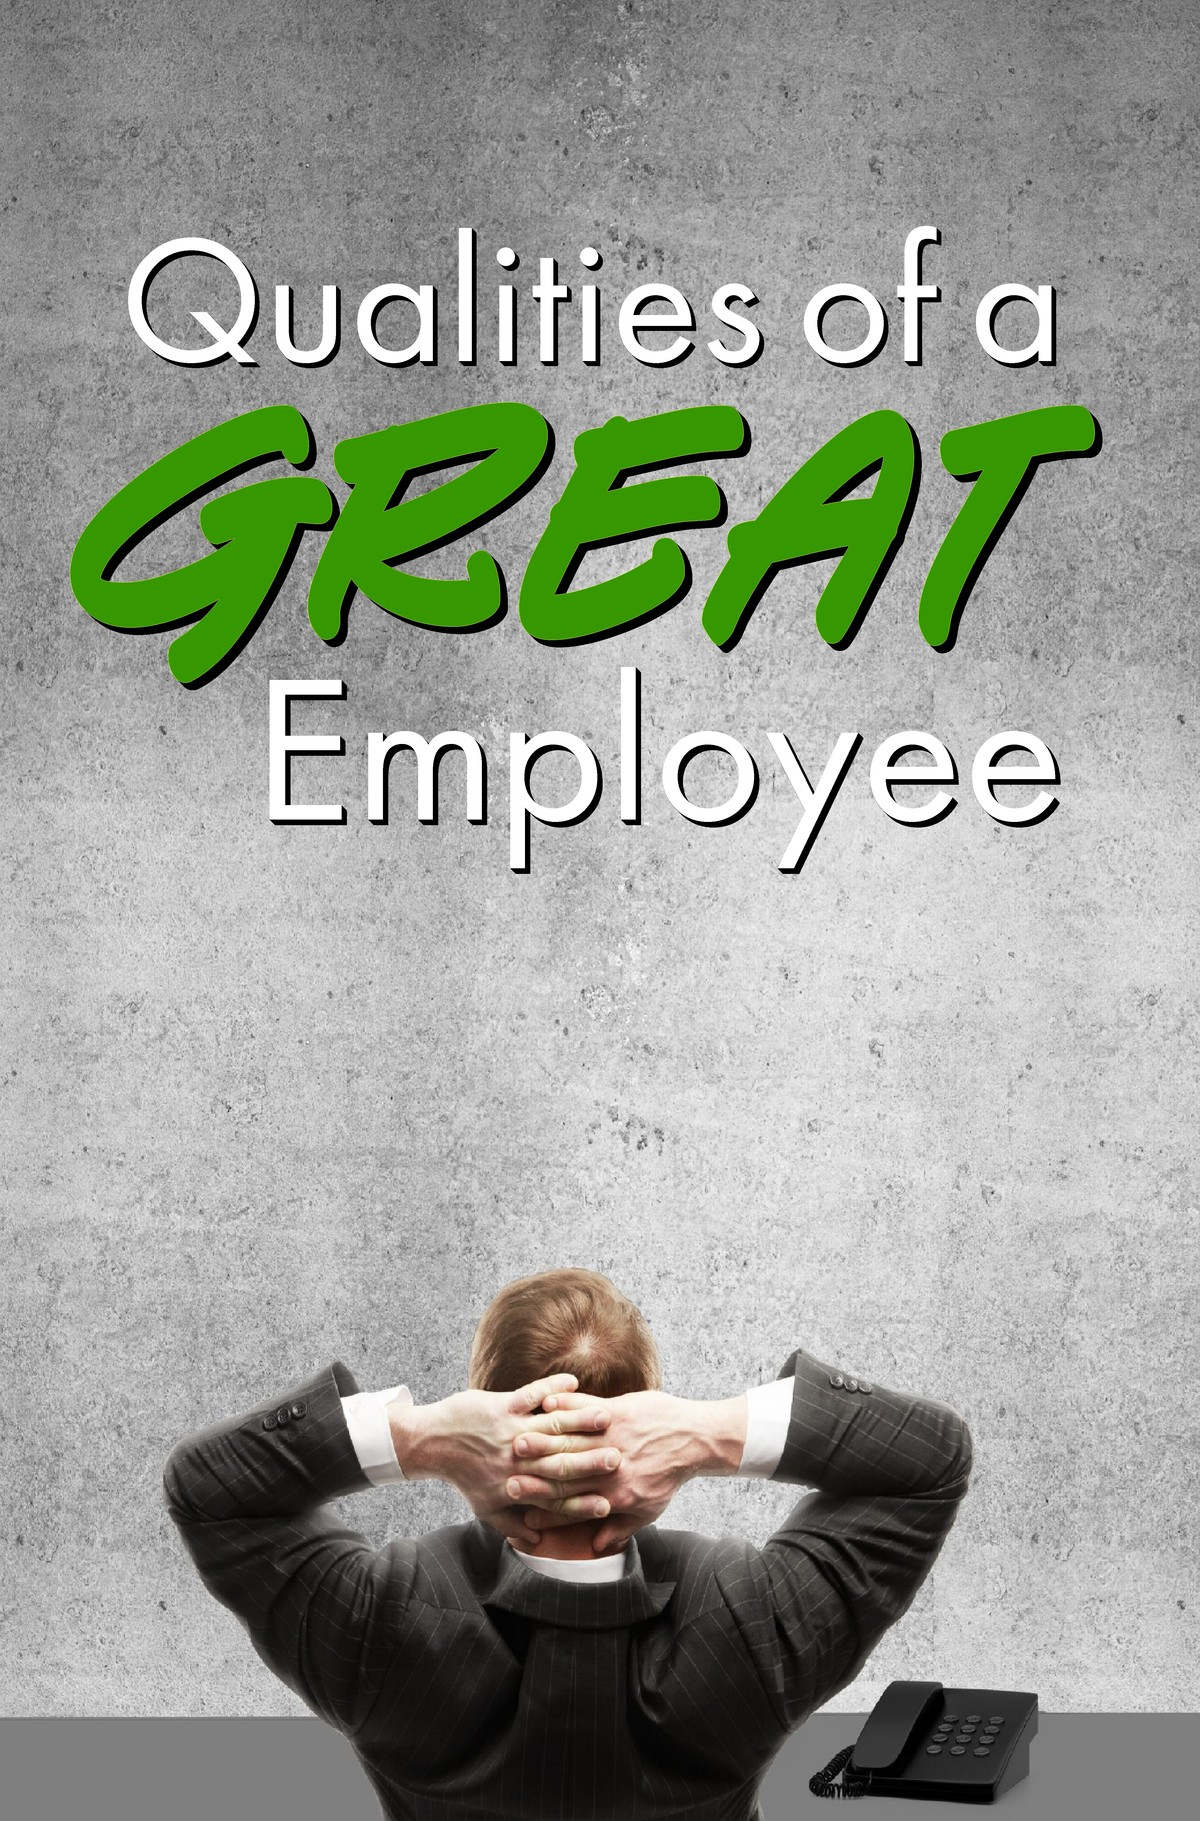 L7023 - Qualities of a Great Employee